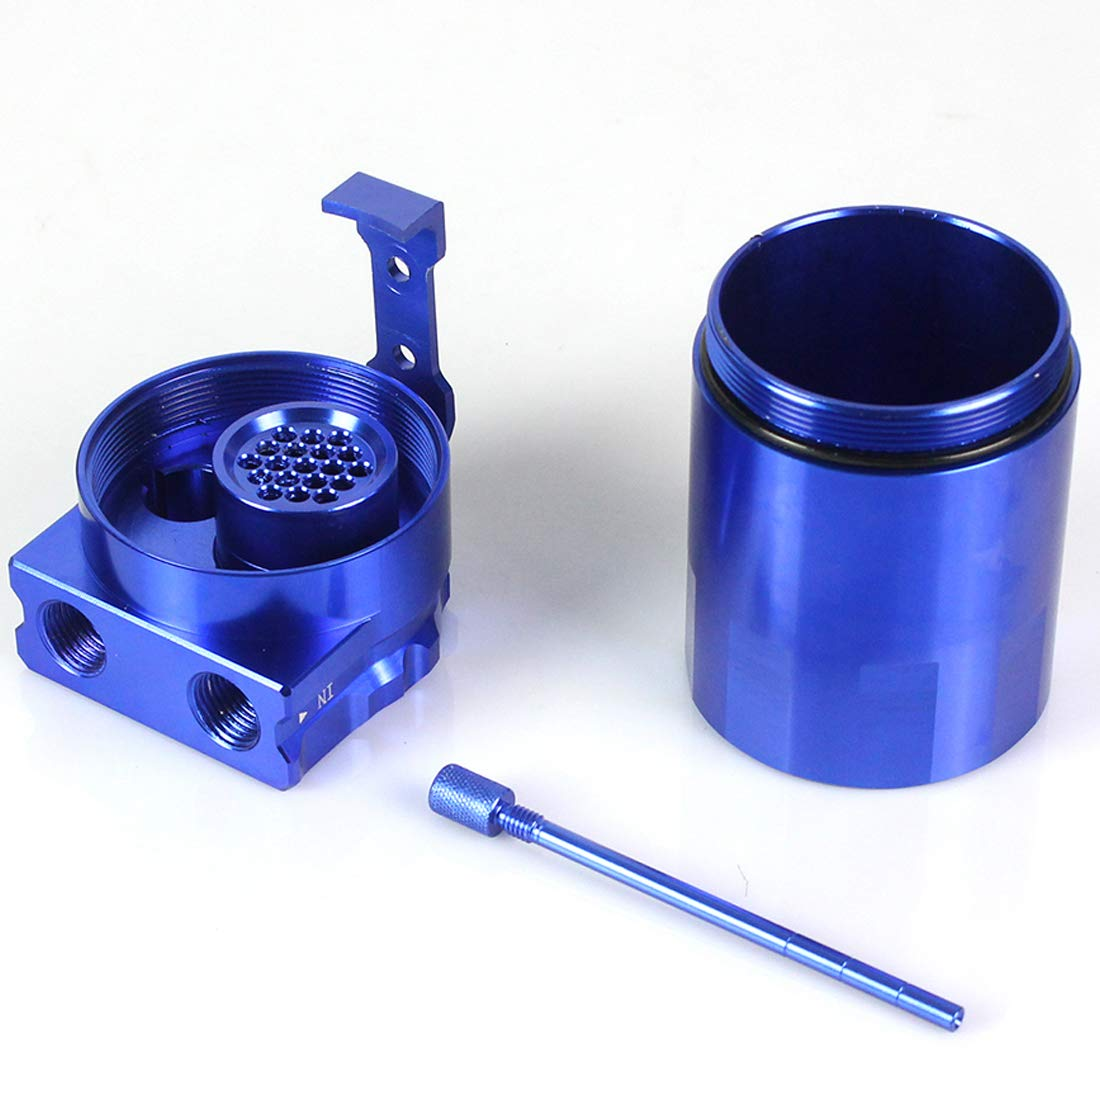 Blue Drain Valve Port 2 TYSKL Universal Aluminum 400ml Oil Catch Can Car Truck Engine Oil Catch Can Tank Polish Baffled Reservoir